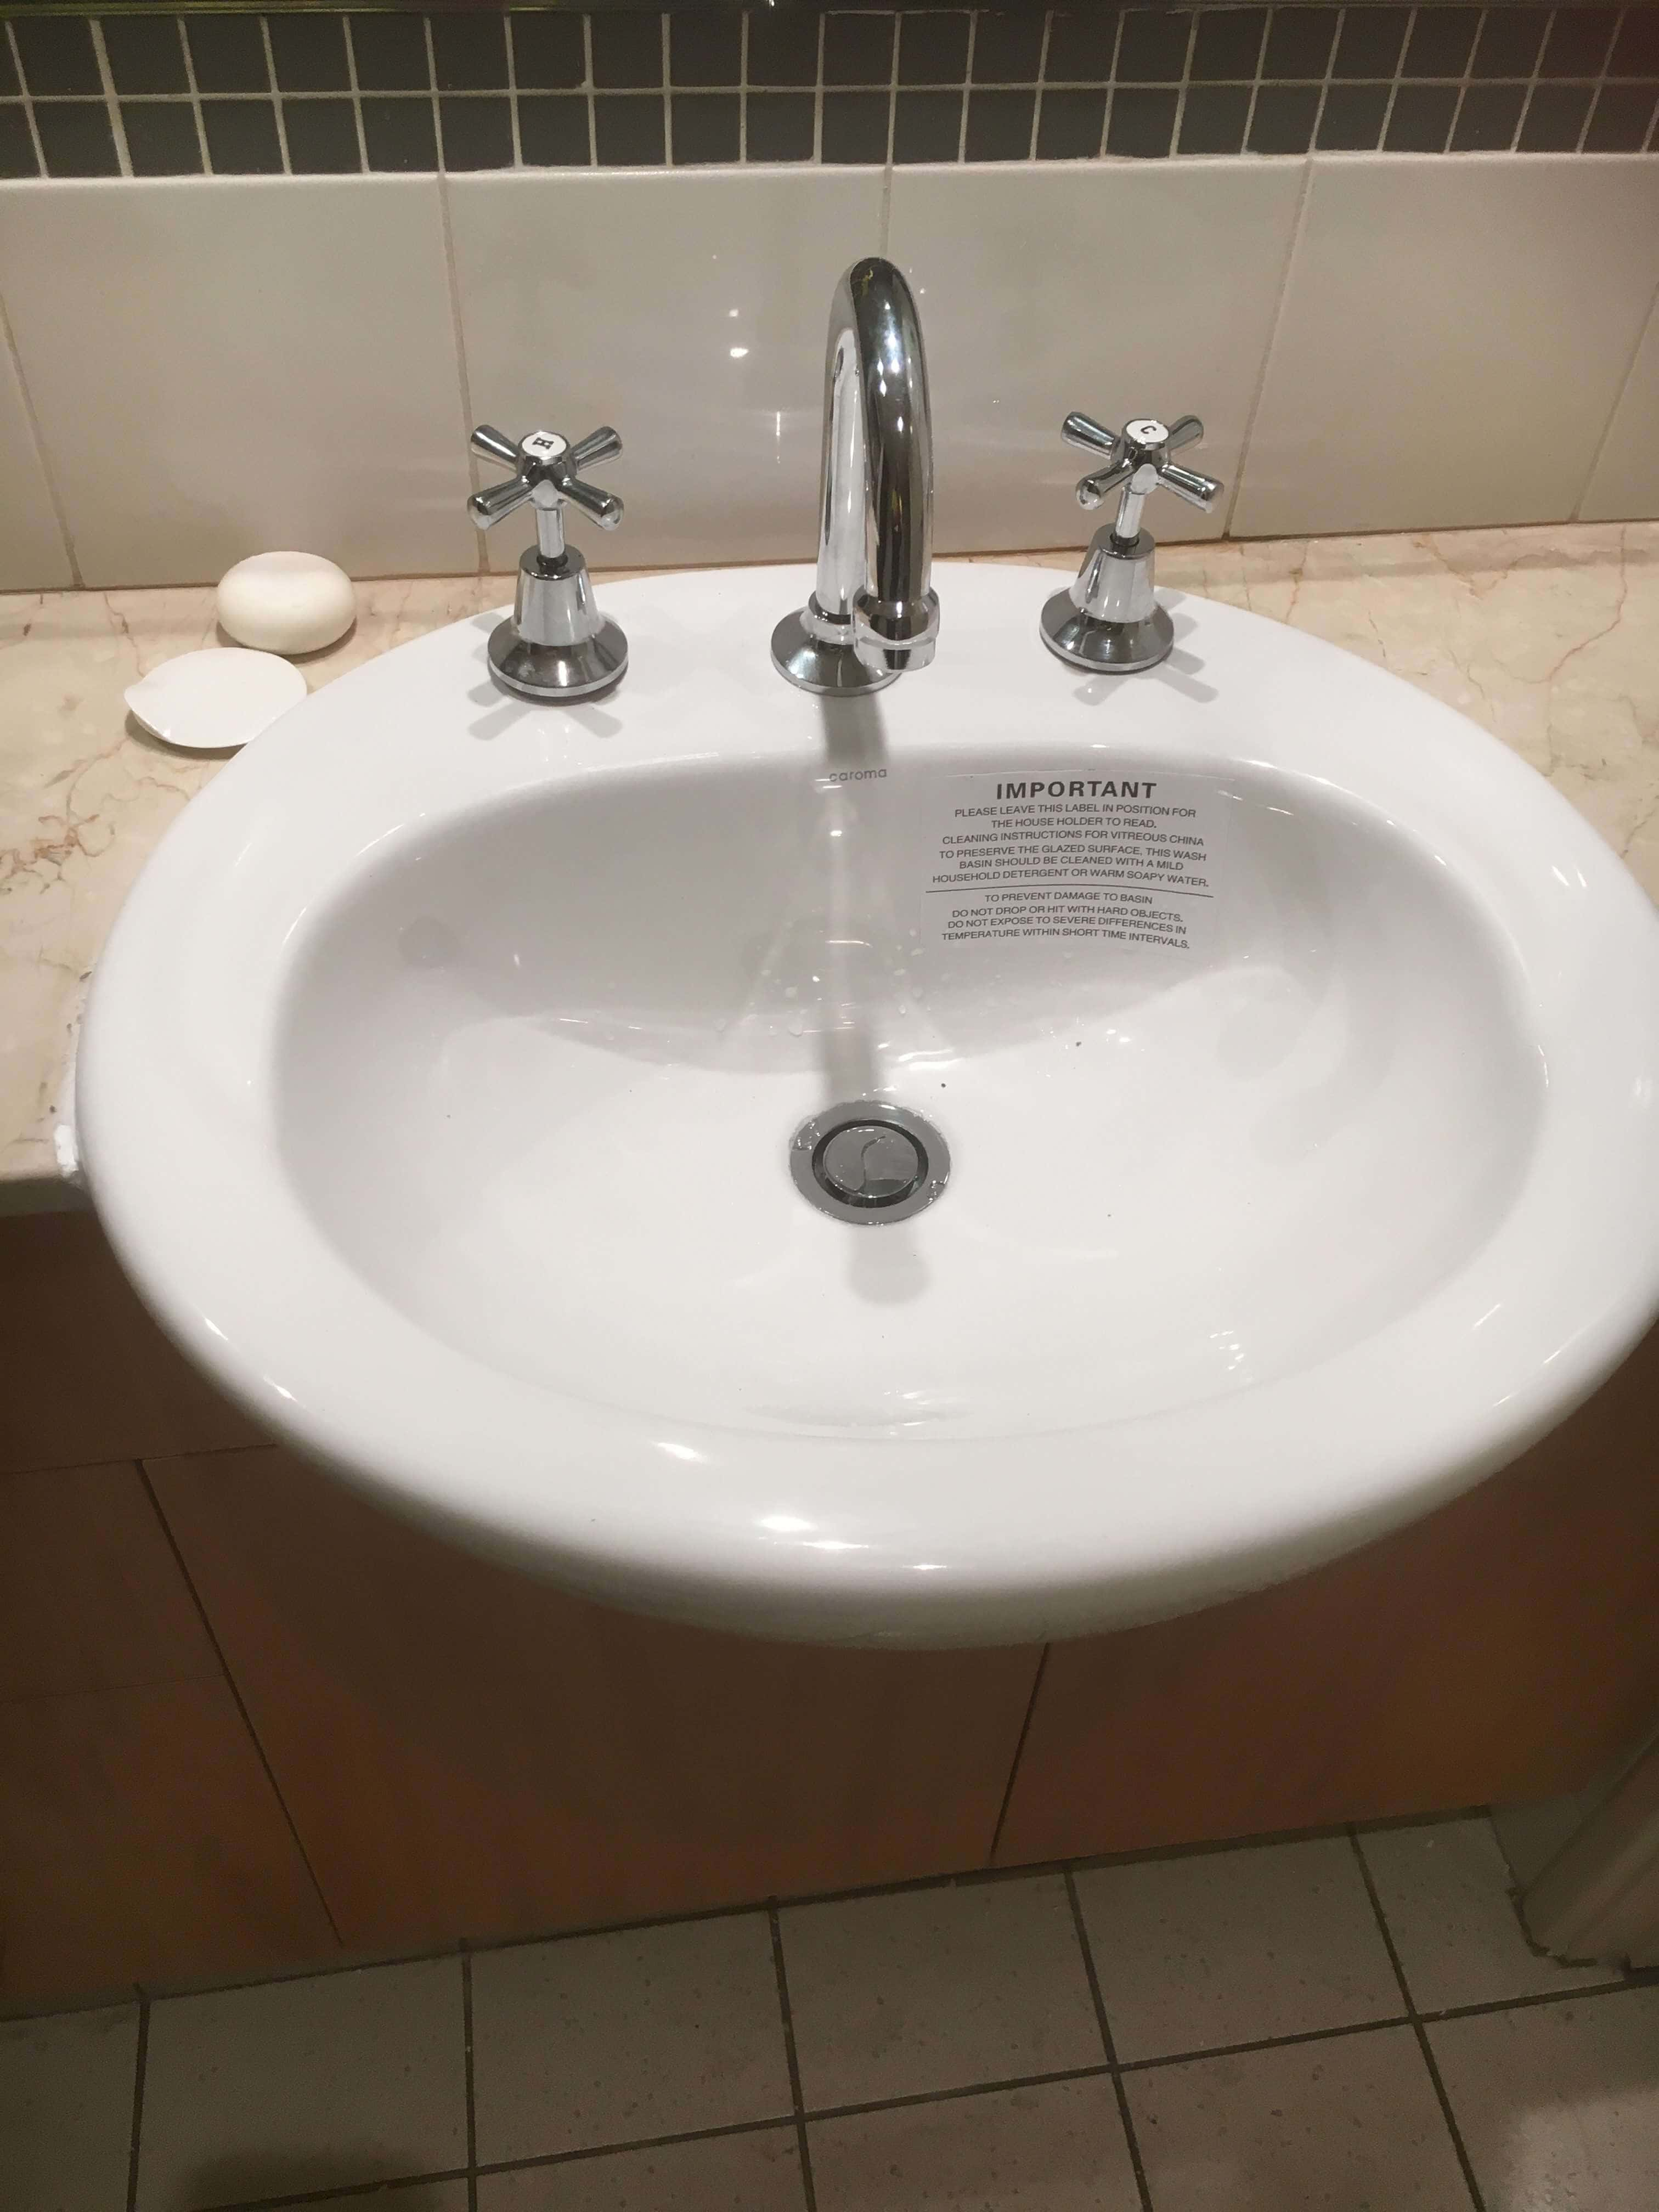 Everyday Plumbers Residential Sanitary Fixtures - Ceramic Circular Sink with Two Tap Source 2787